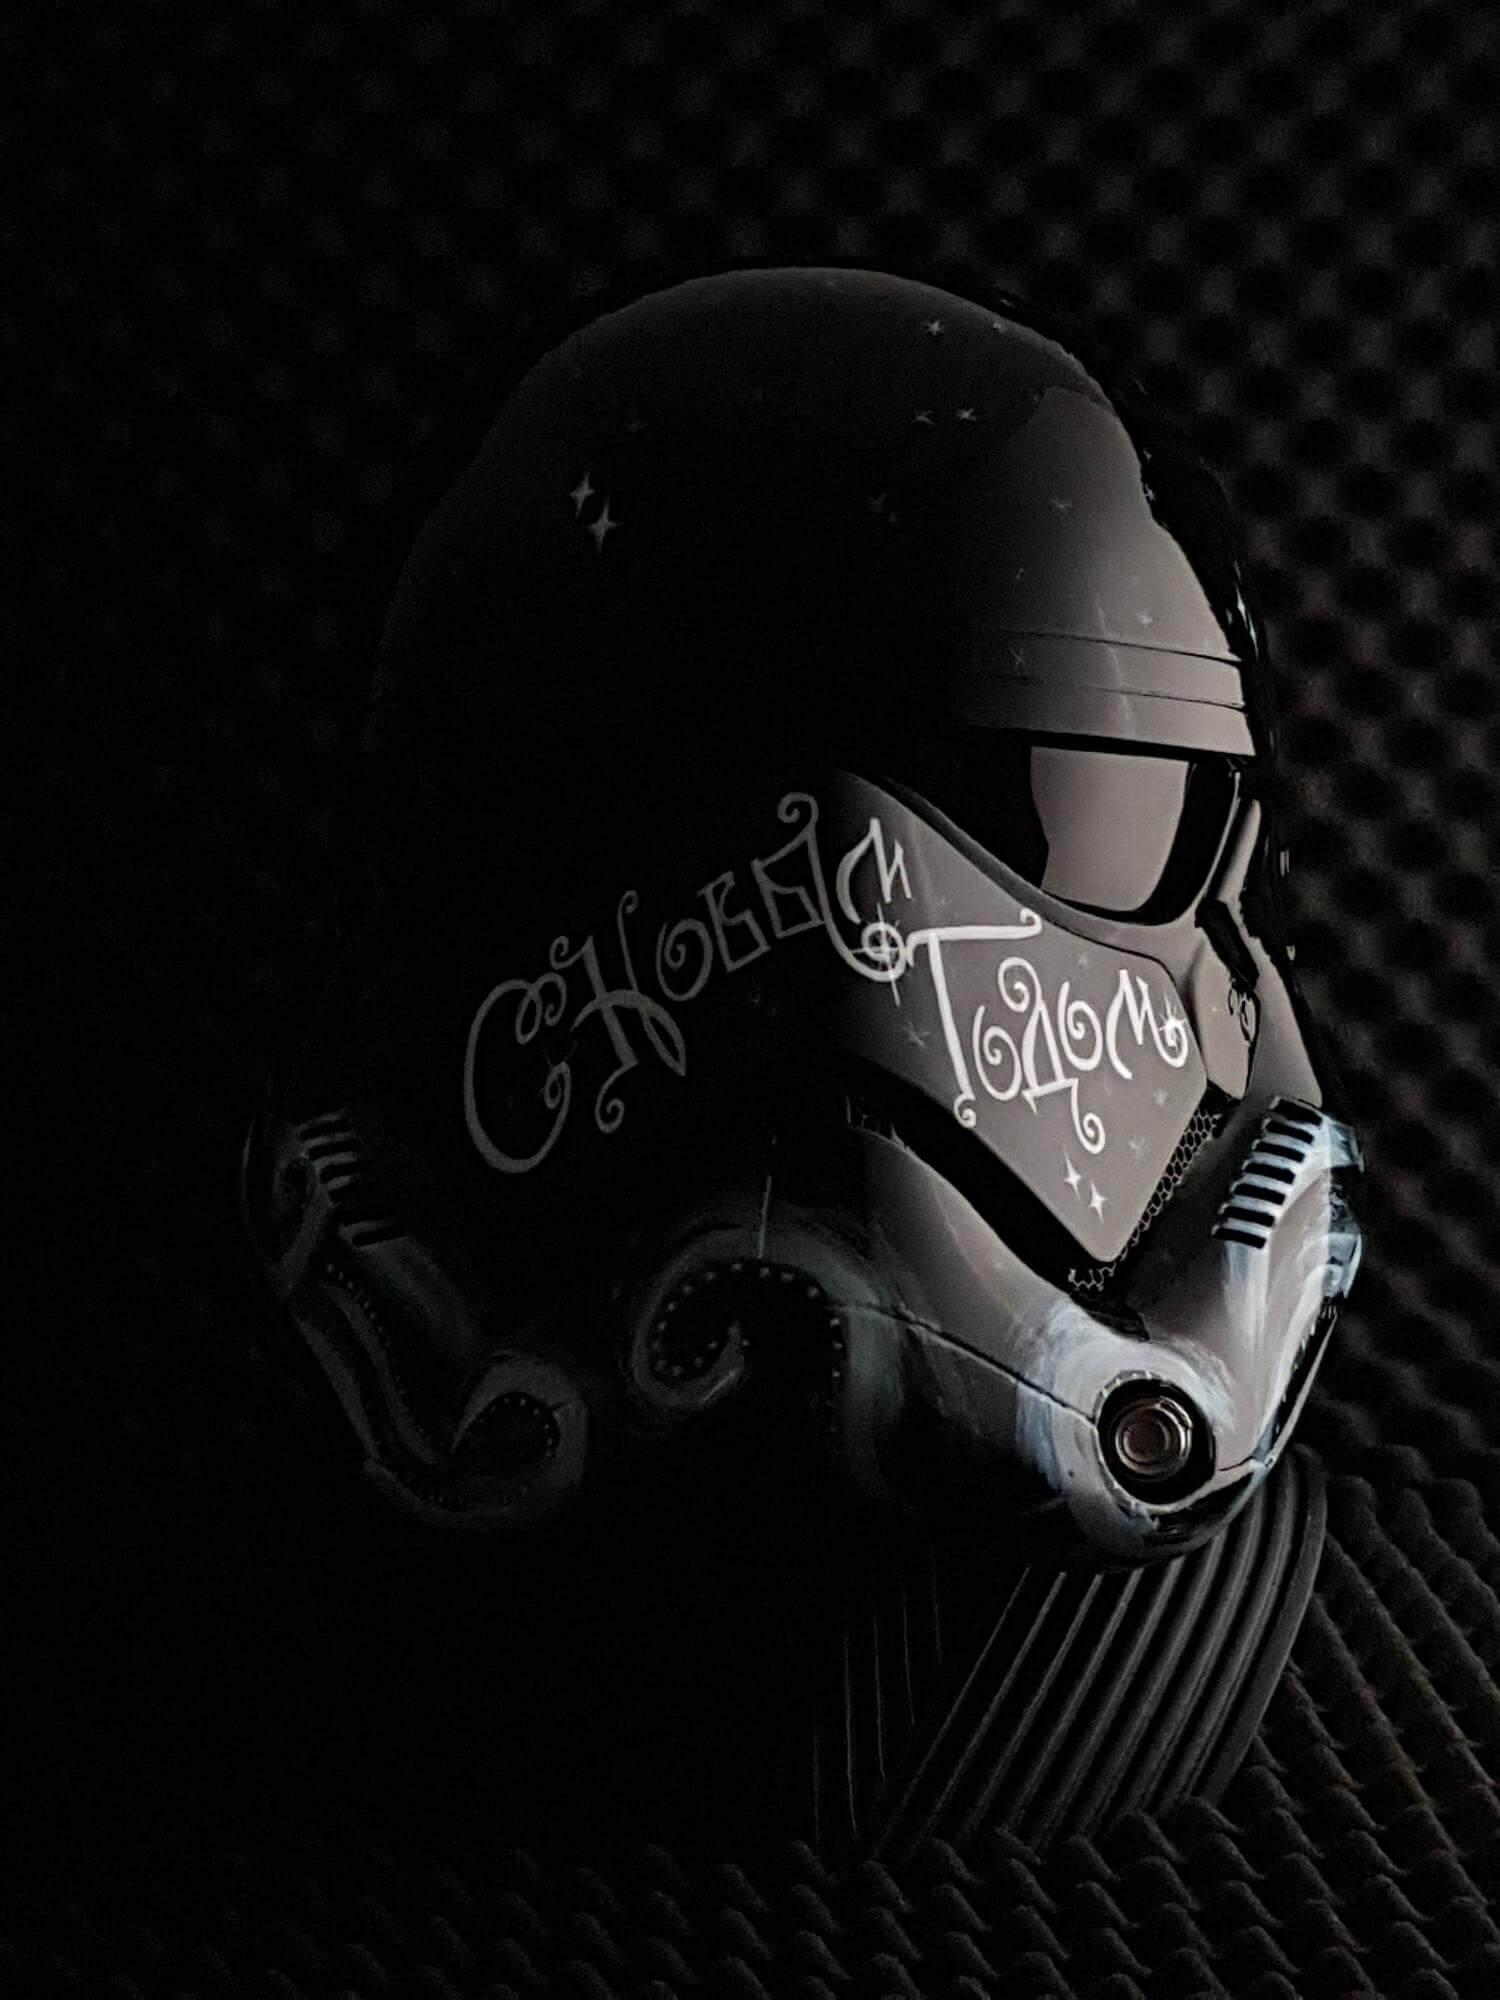 Kremlin - Art Project - Stormtrooper Helmet